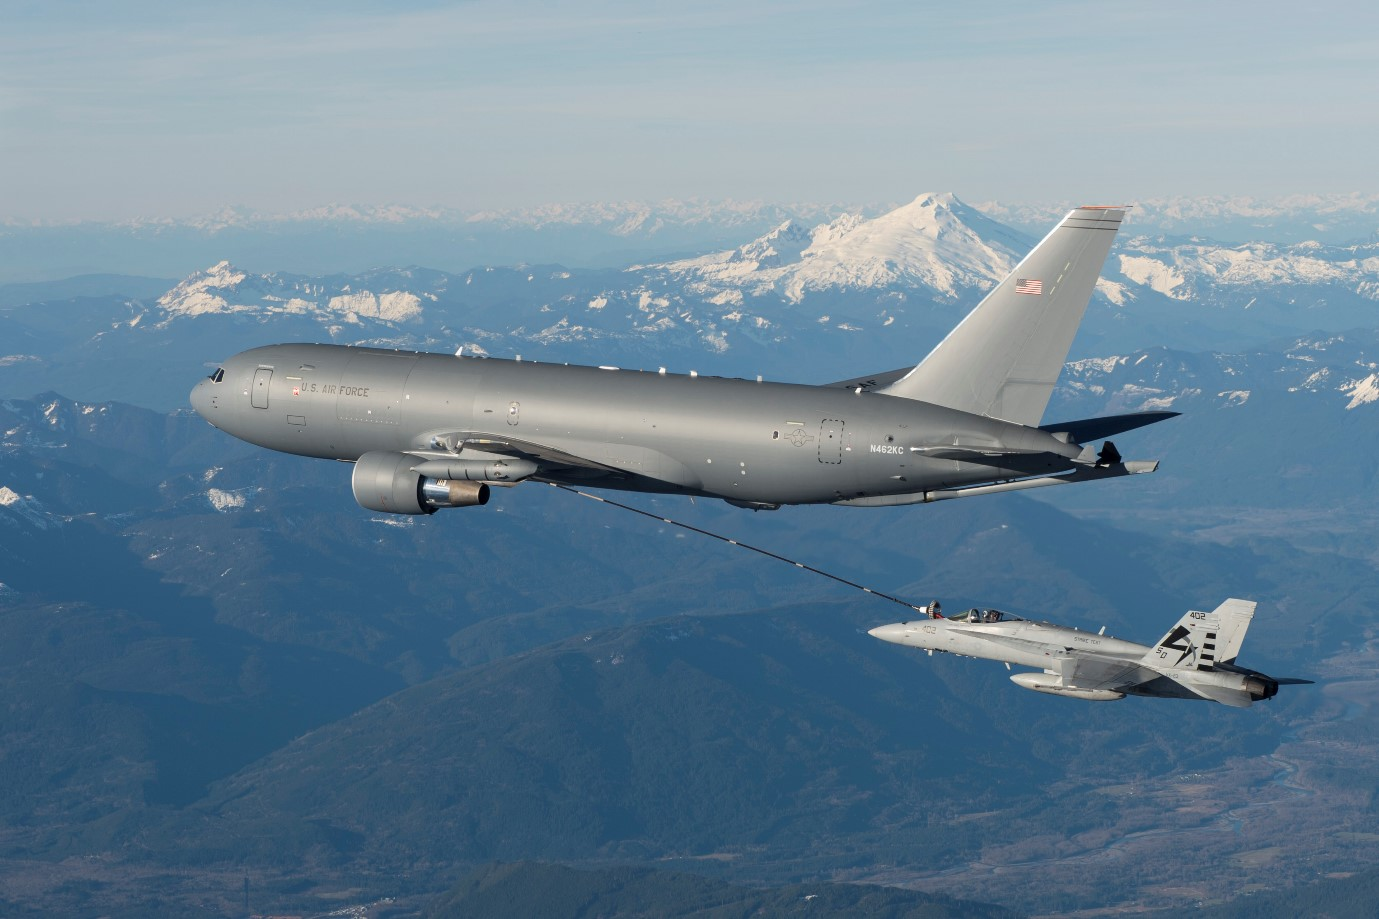 Cobham Welcomes Delivery of Boeing KC-46A to U.S. Air Force